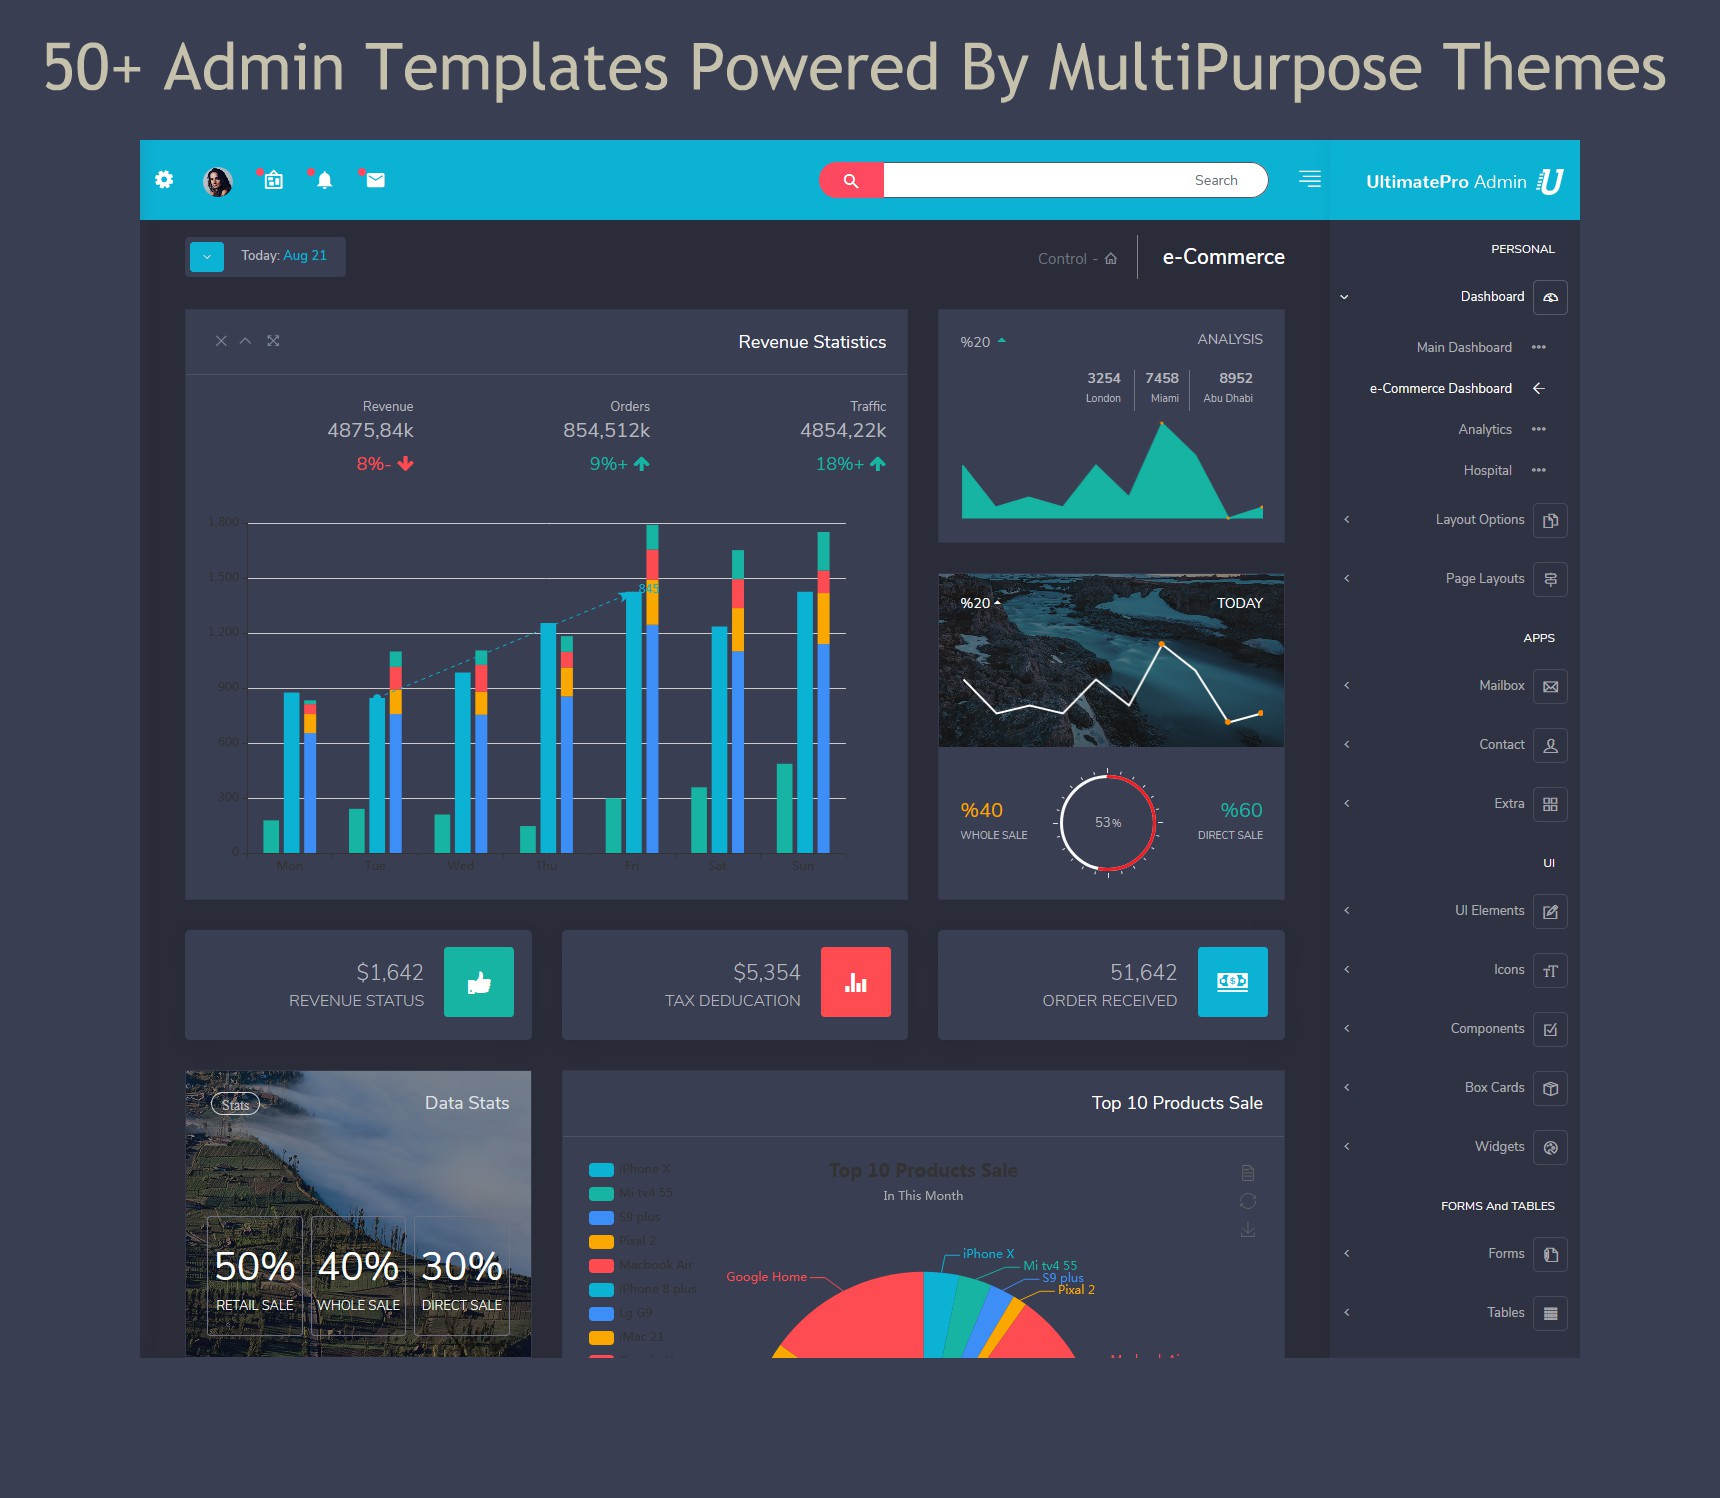 50+ Ultimate Collection Of Admin Templates Powered By MultiPurpose Themes